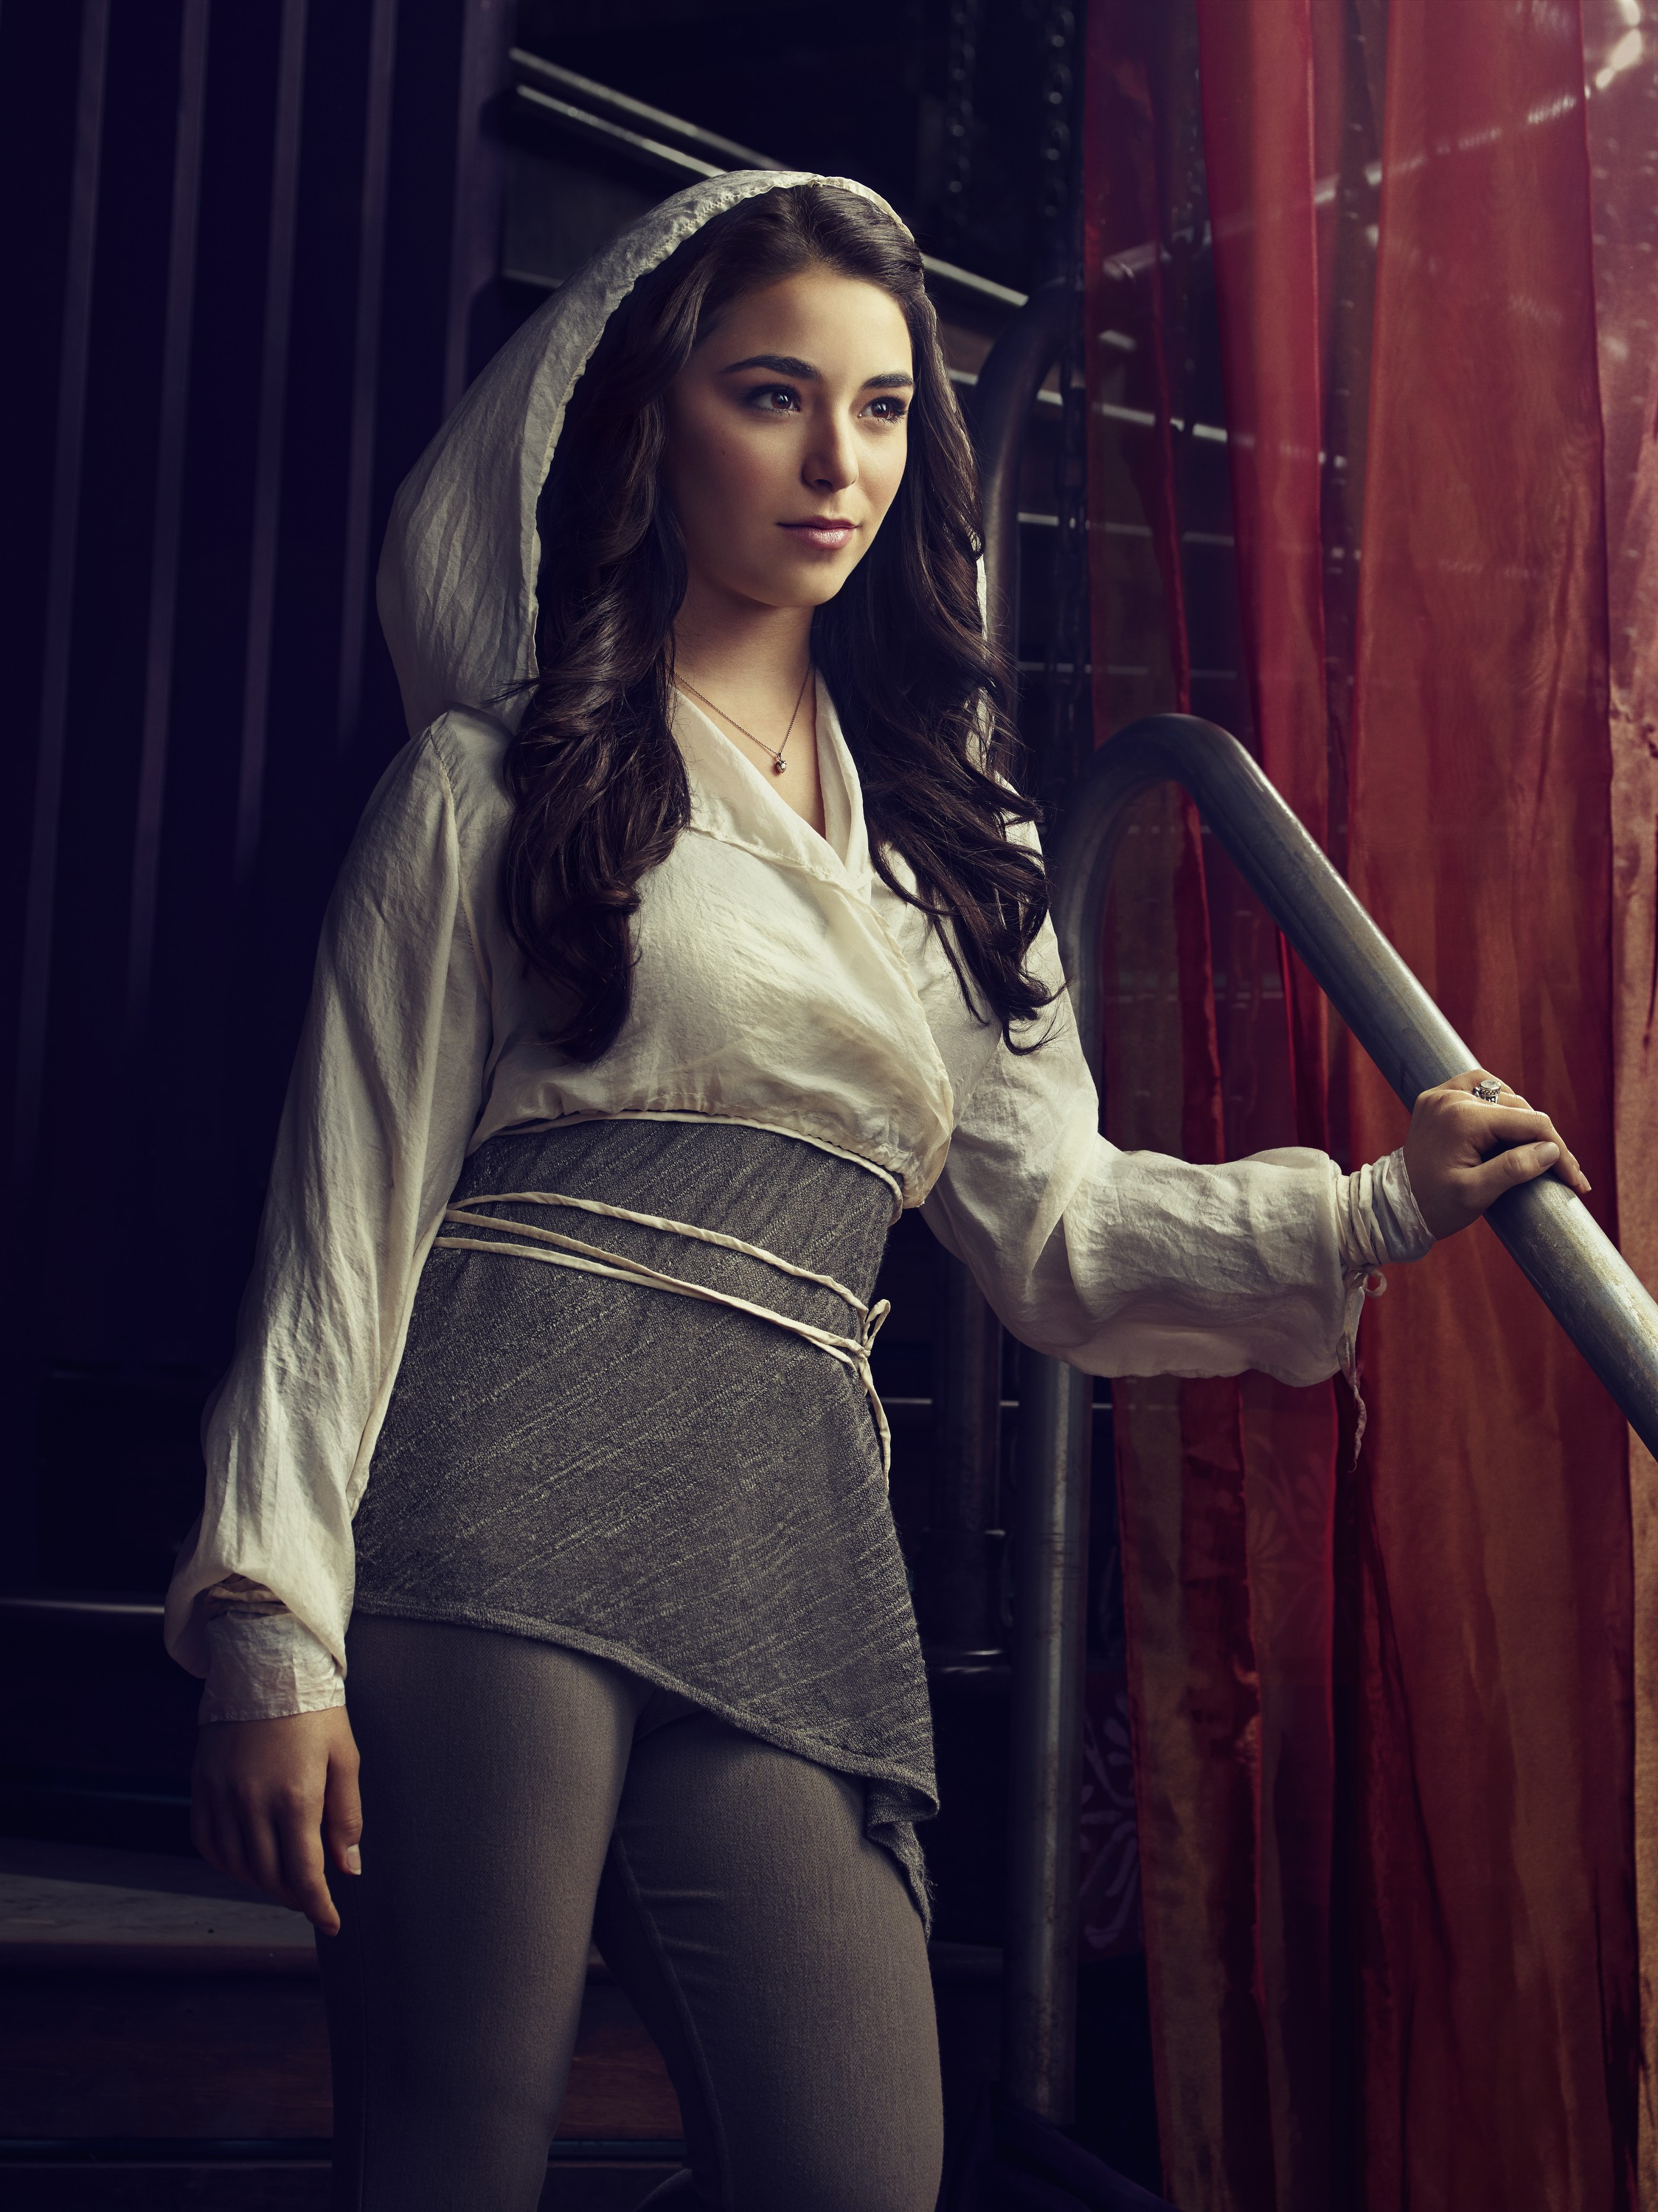 Defiance season 2 -Nicole Muñoz as Christie Tarr (née McCawley) hot